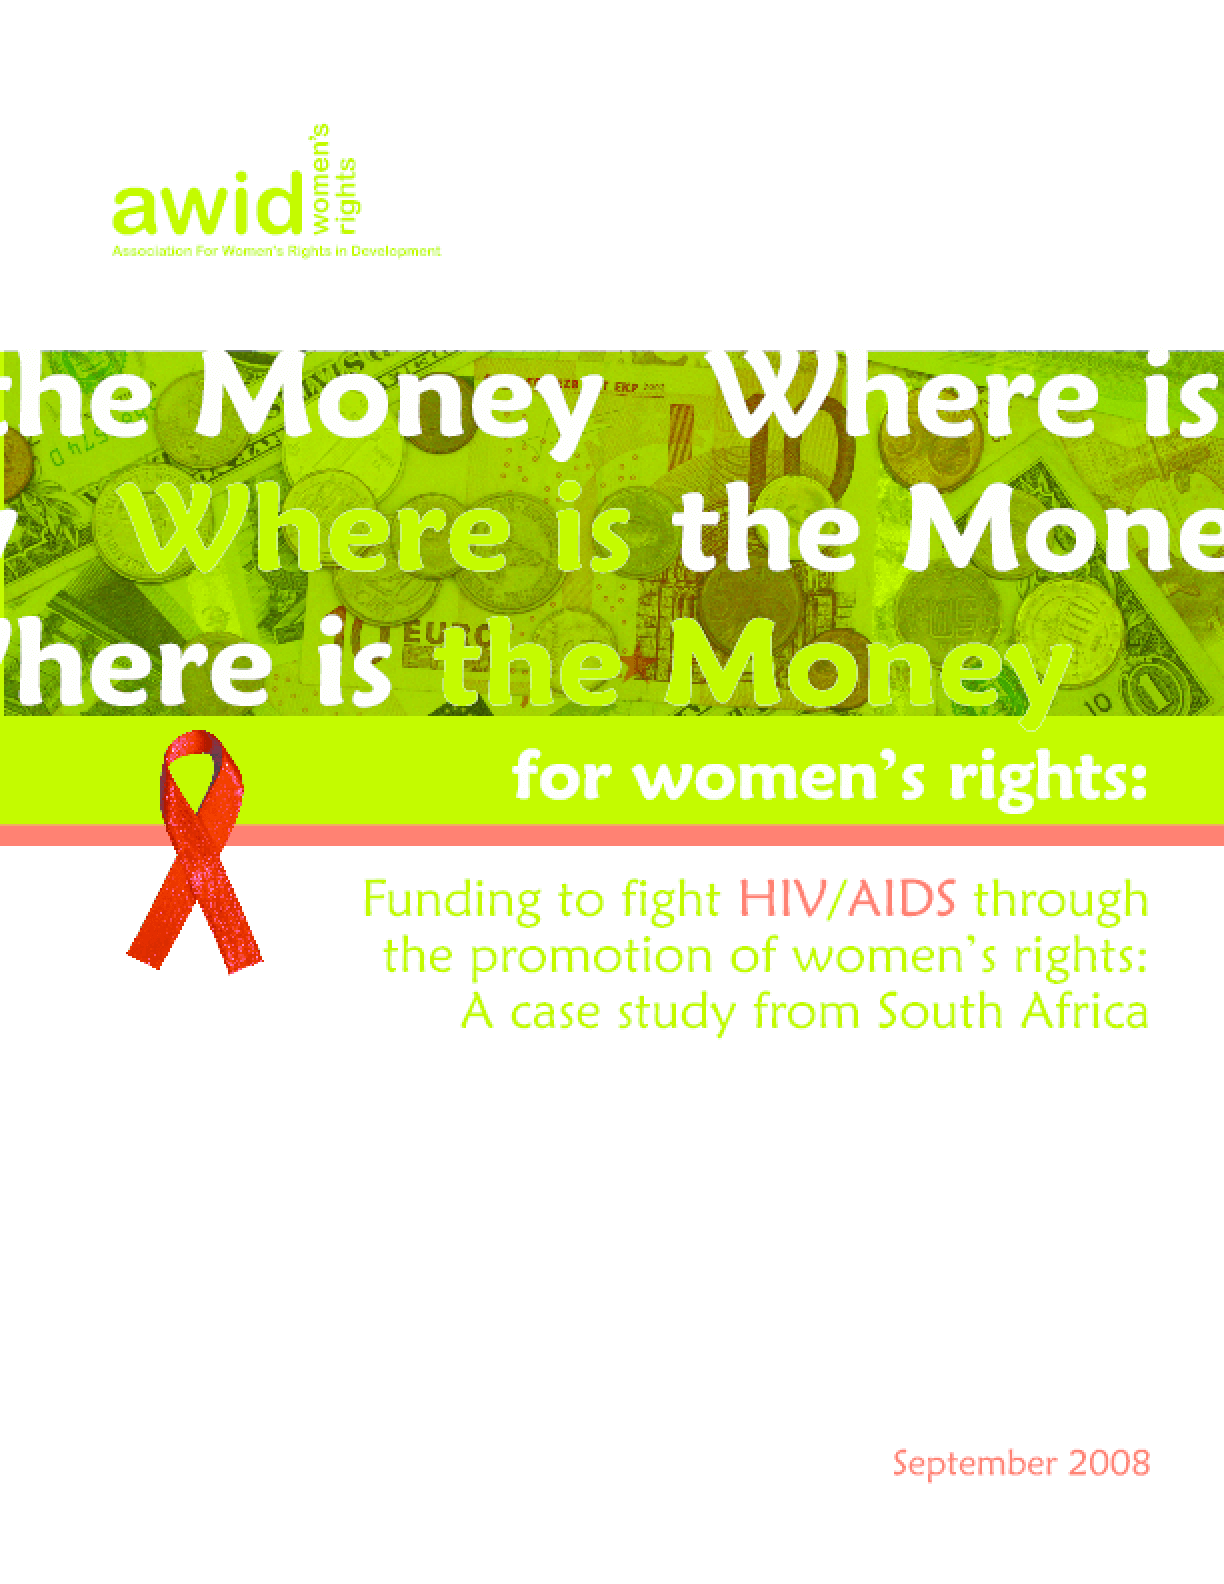 Funding to fight HIV/AIDS through the promotion of women's rights: A case study from South Africa